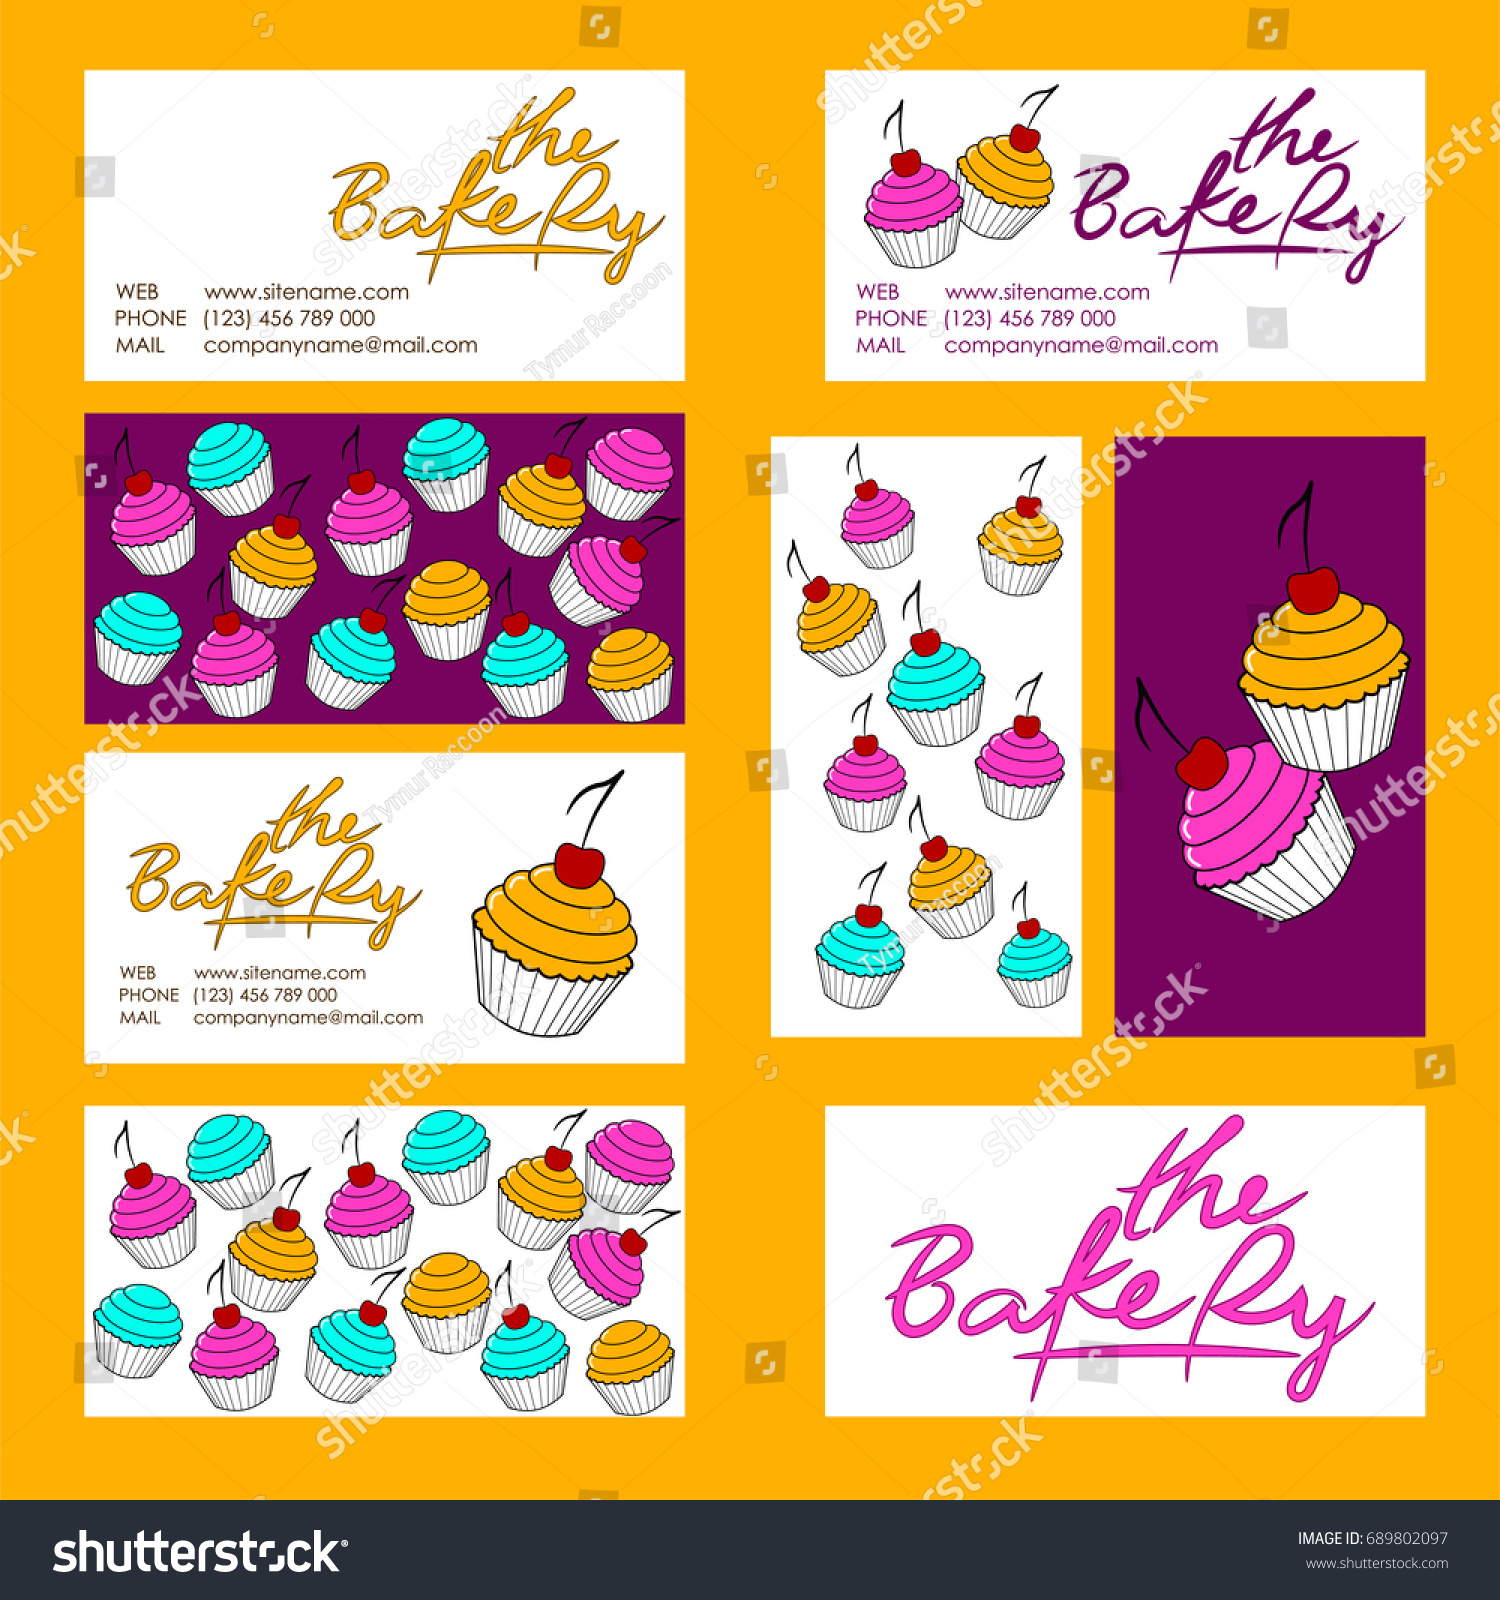 Cupcake Business Card Template Eliolera